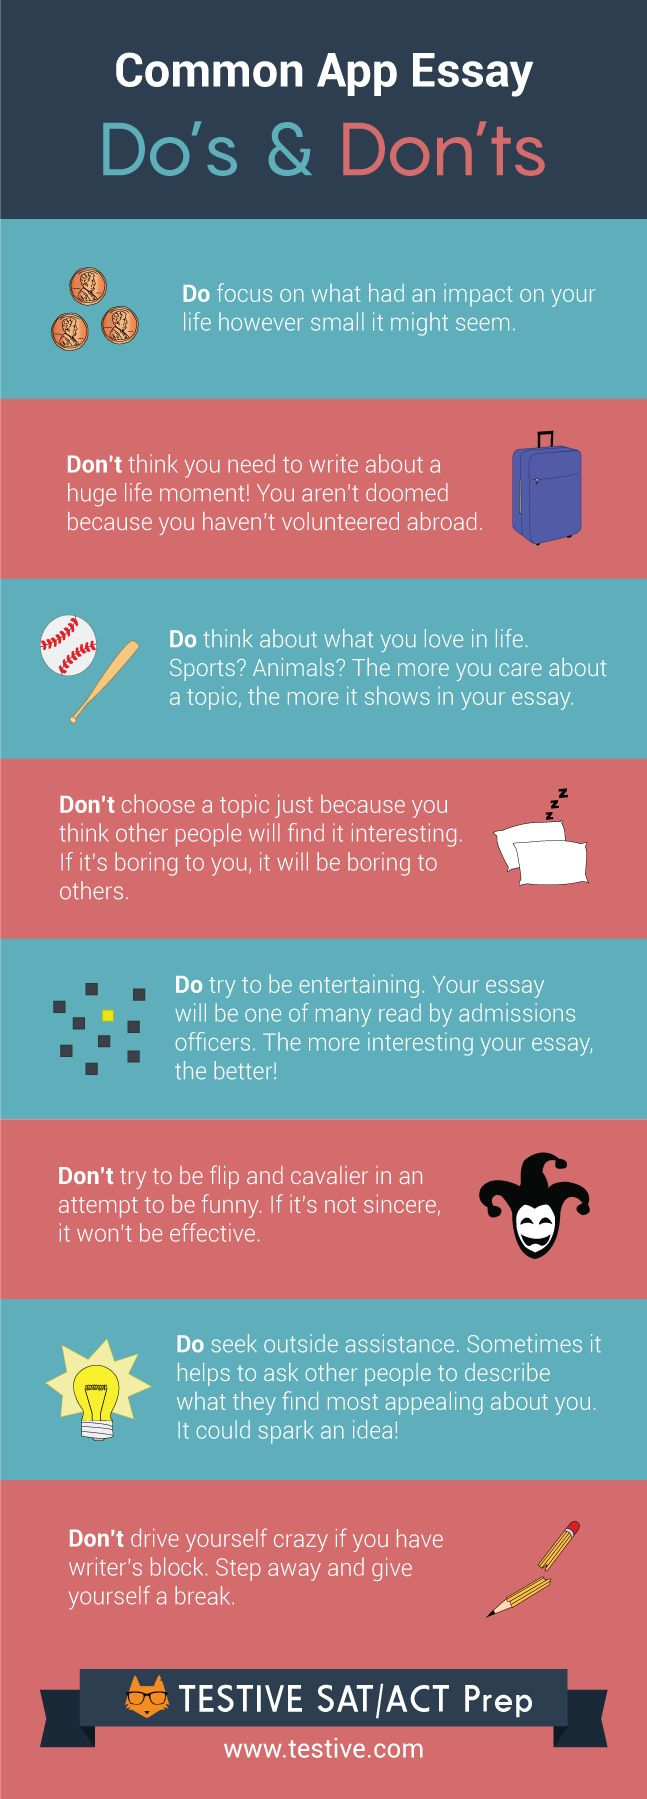 Best  College Essay Ideas On Pinterest  College Essay Tips  Working On Your Common App Personal Statement Heres Some Advice On What  You Should Write